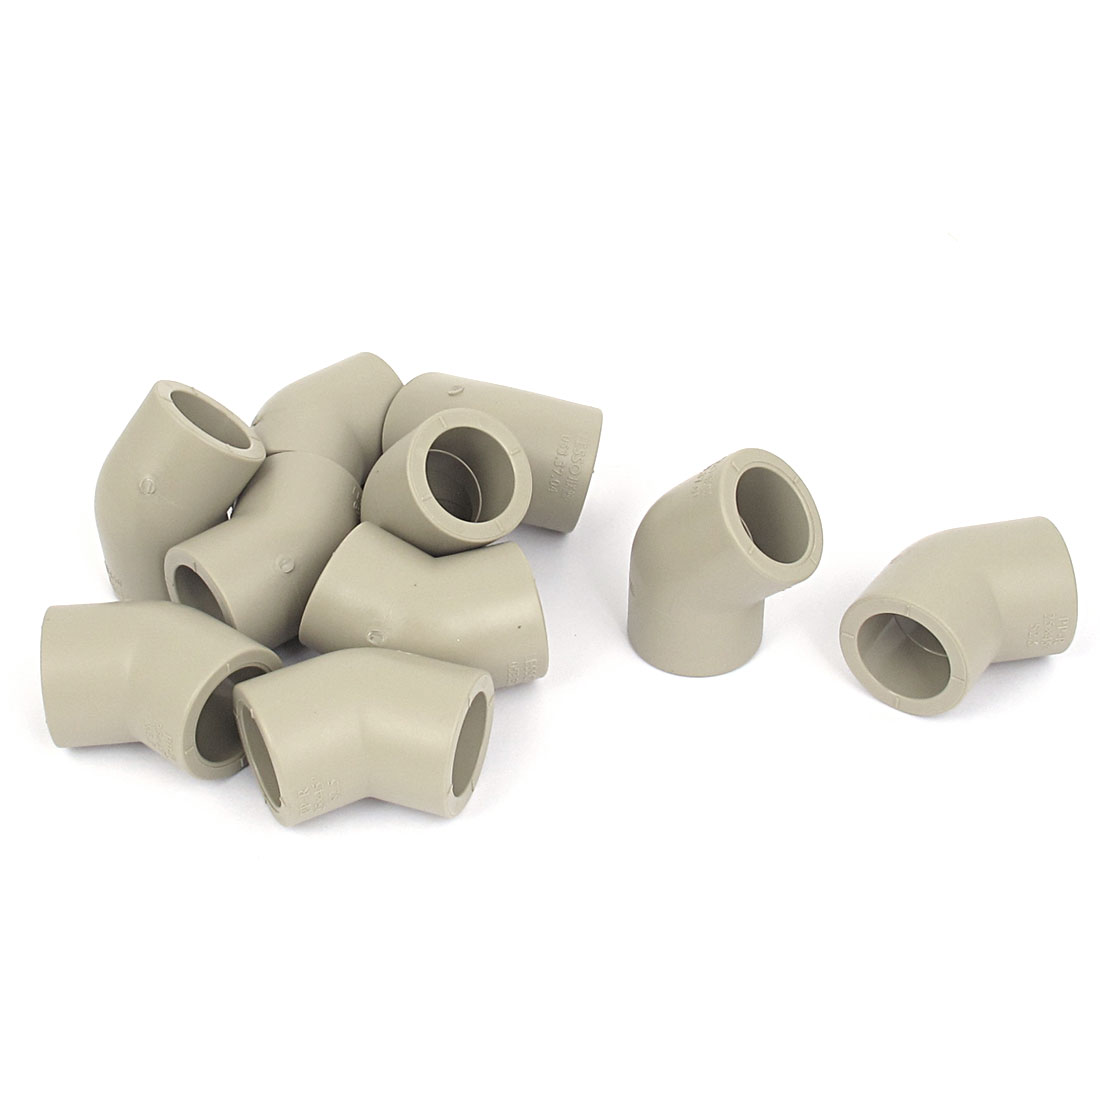 25mm Inner Dia PPR 2 Way 45 Degree Water Pipe Hose Joint Adapter Connector Gray 10pcs